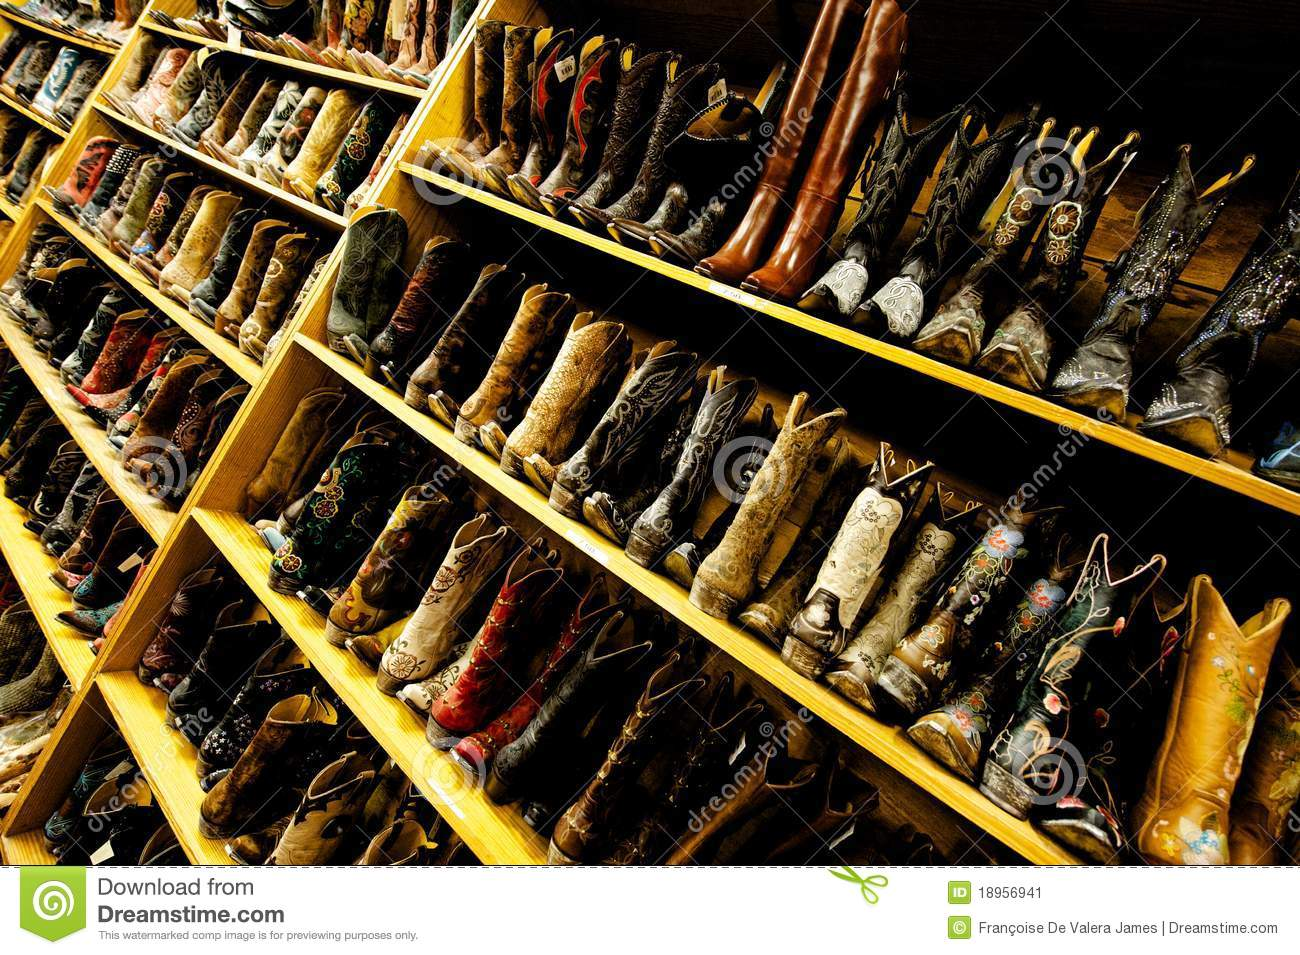 Cowboy boot - Wikipedia, the free encyclopedia